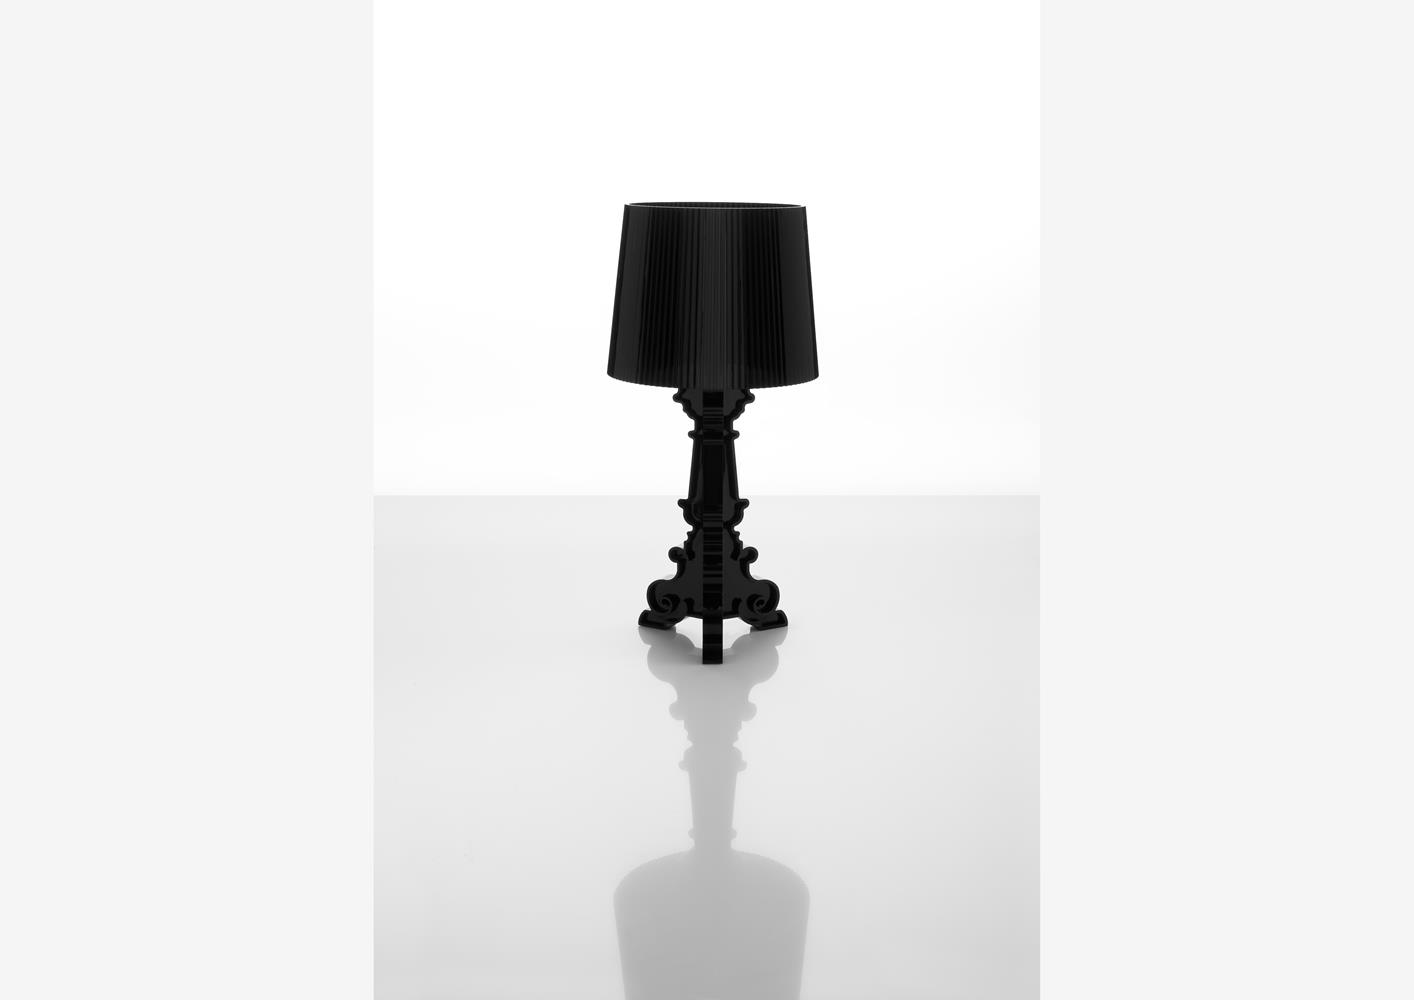 acheter votre lampe contemporaine noire style baroque chez. Black Bedroom Furniture Sets. Home Design Ideas